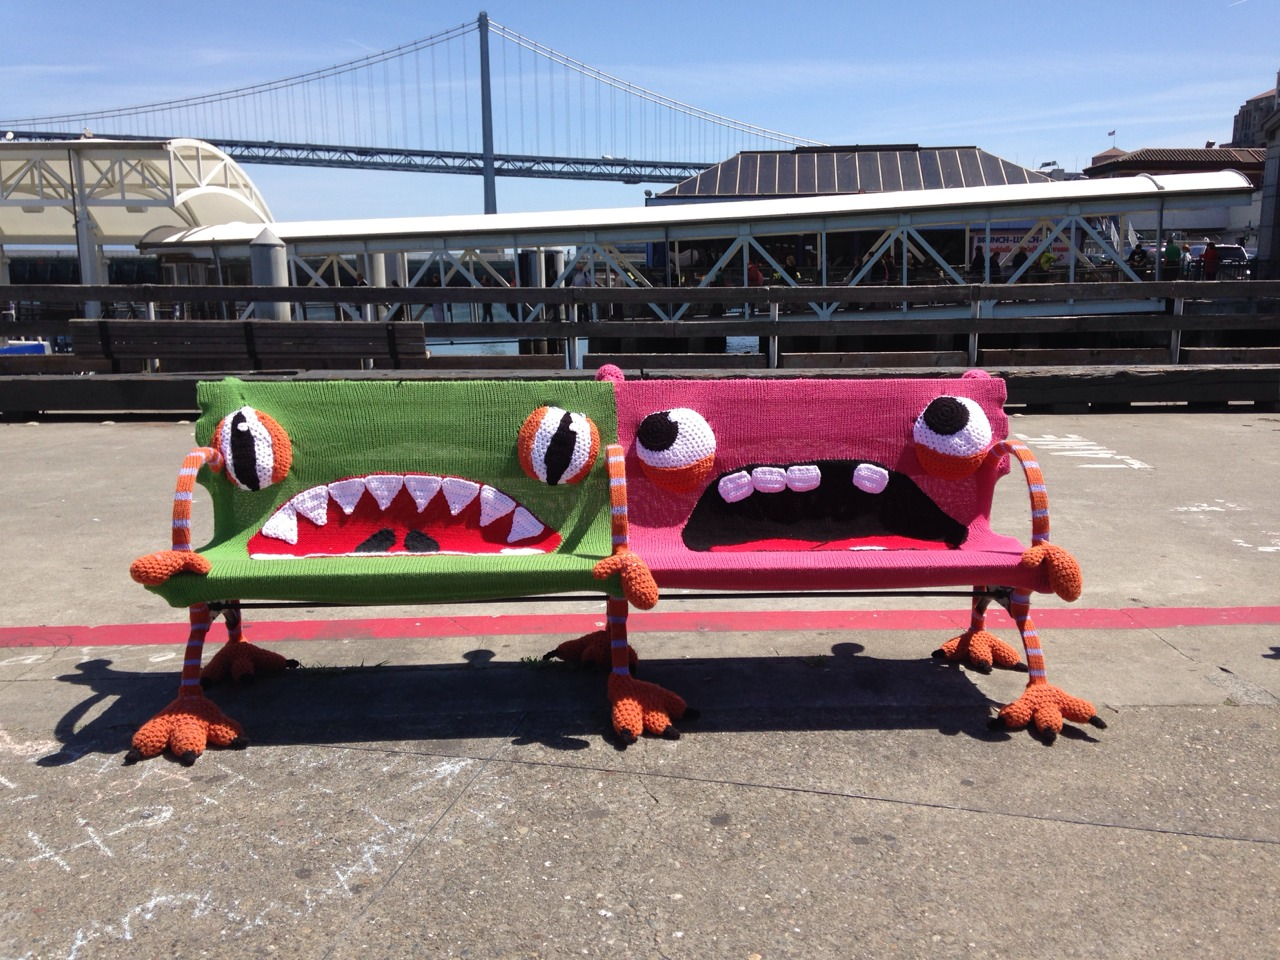 Benches in San Francisco get the yarnbombing treatment